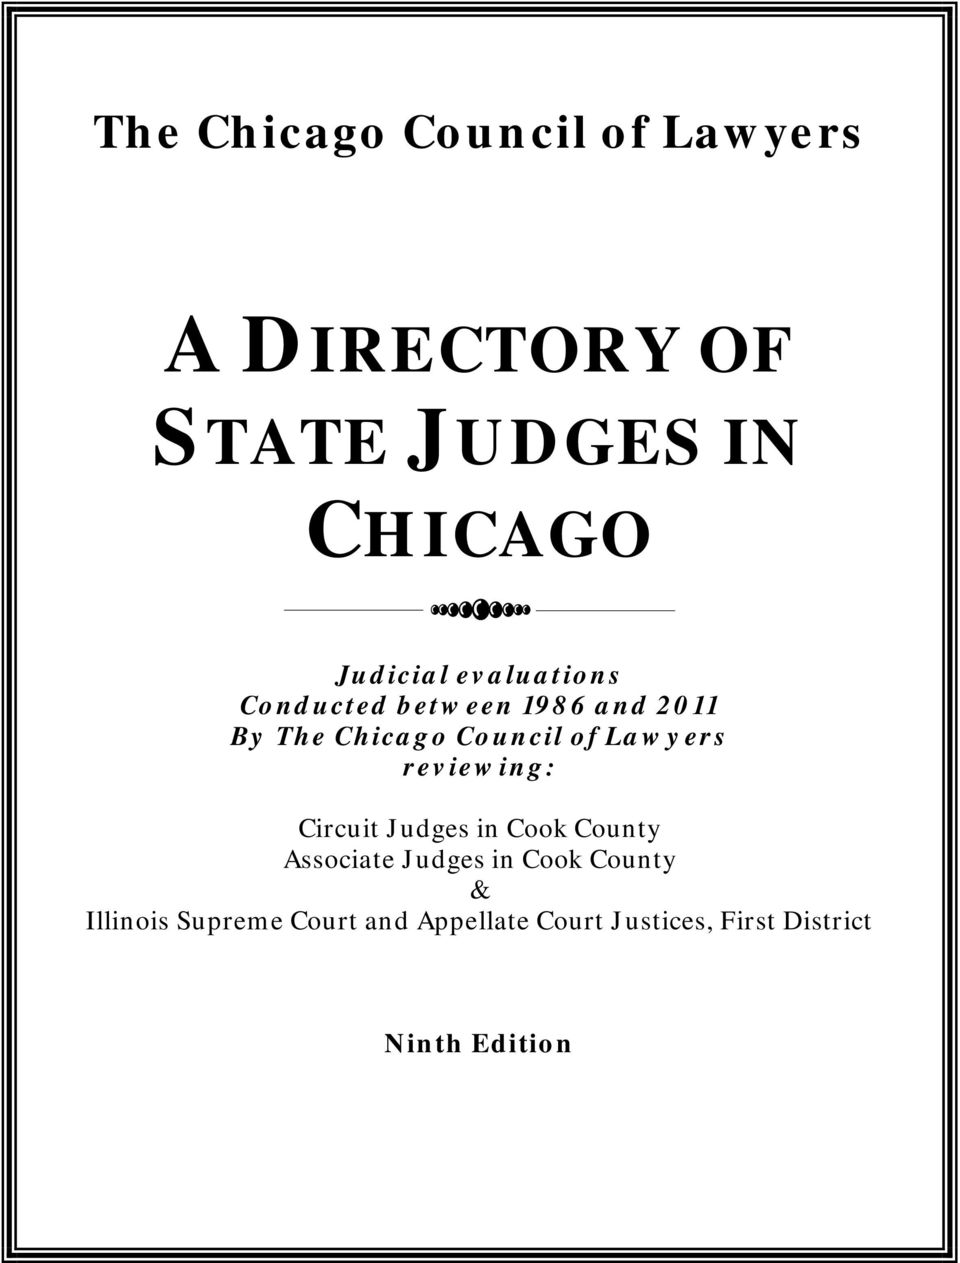 of Lawyers reviewing: Circuit Judges in Cook County Associate Judges in